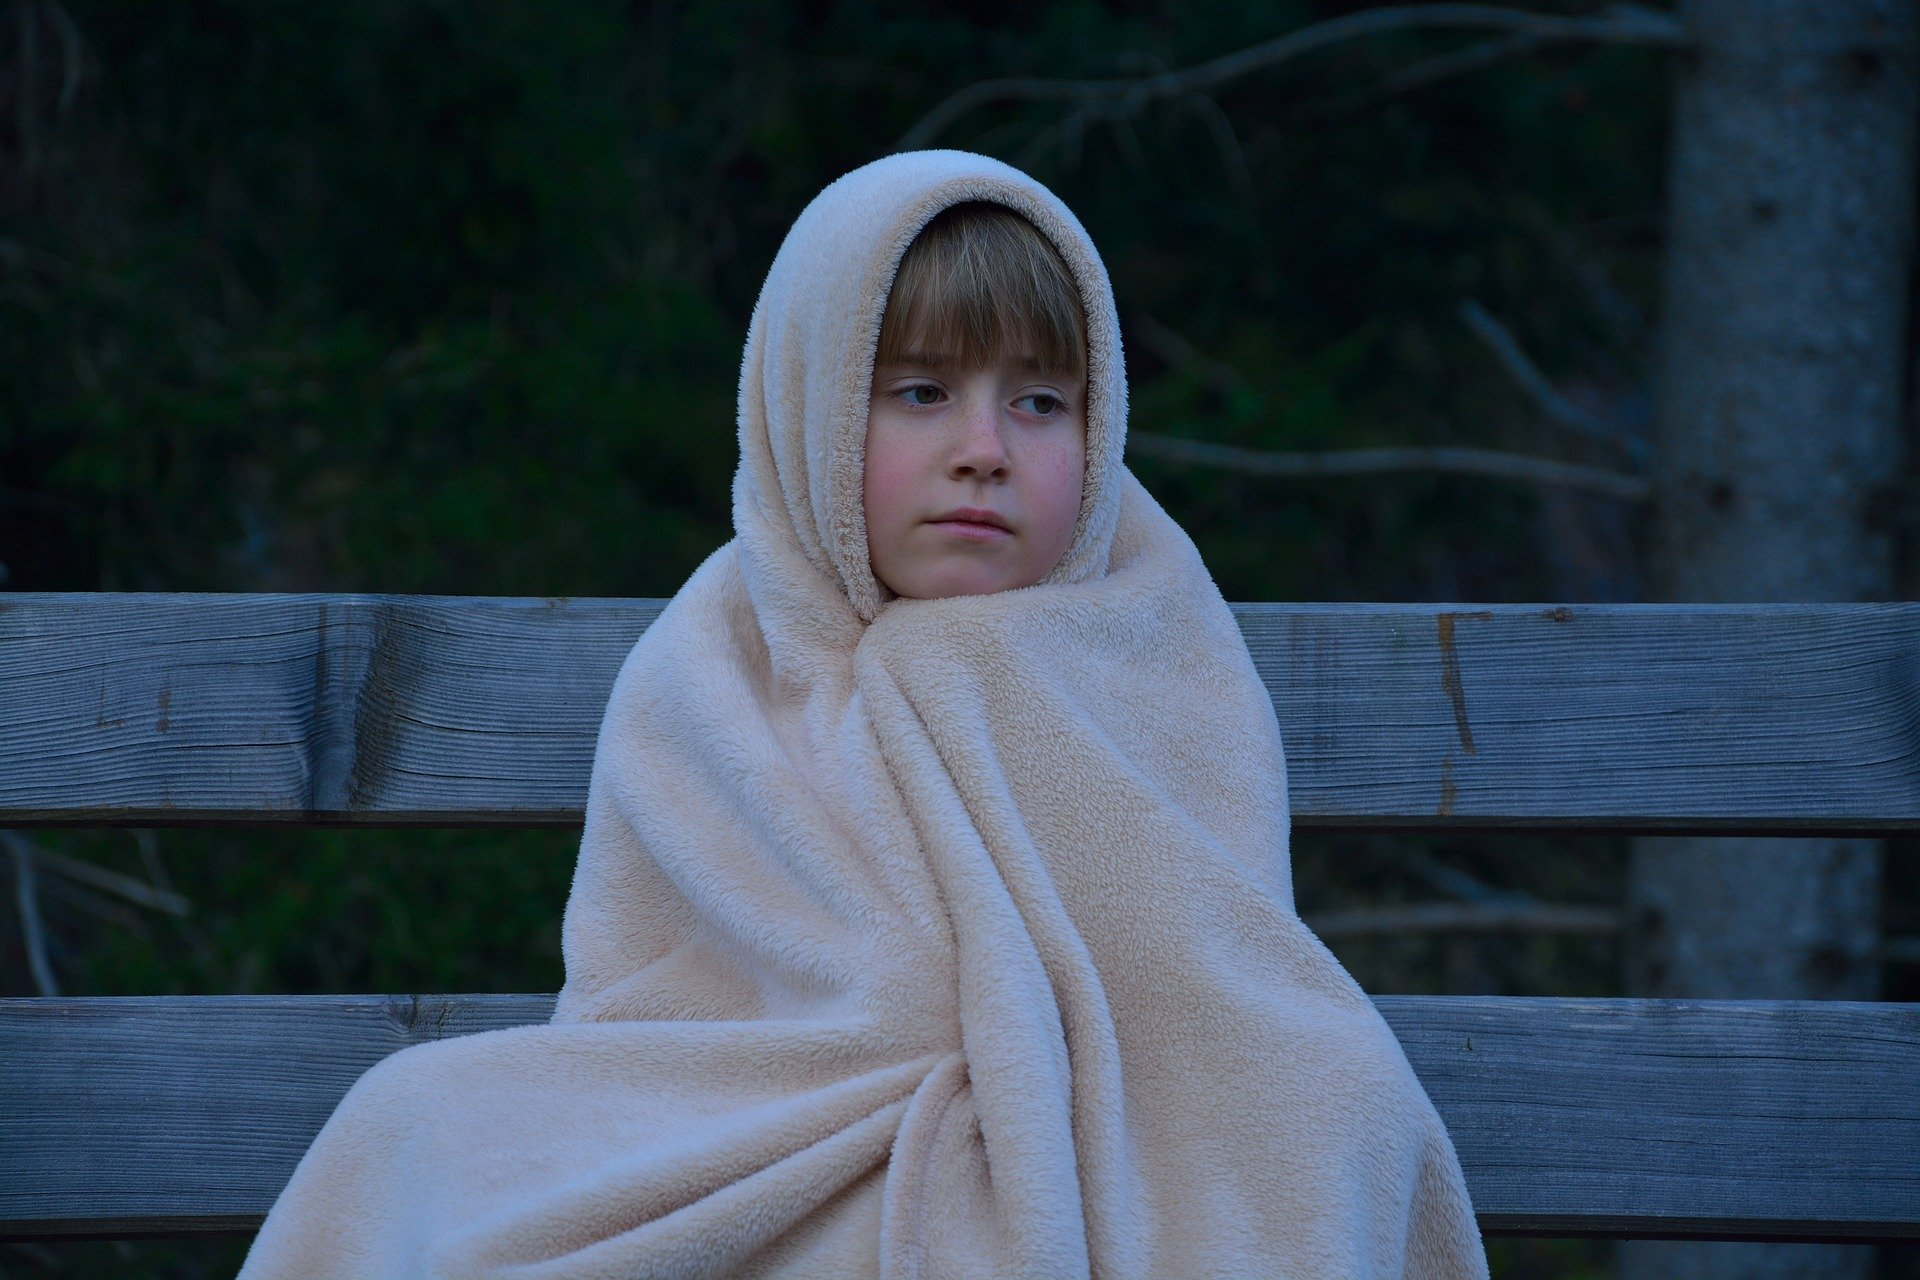 A child wearing a blanket sitting on top of a bench | Source: Pixabay